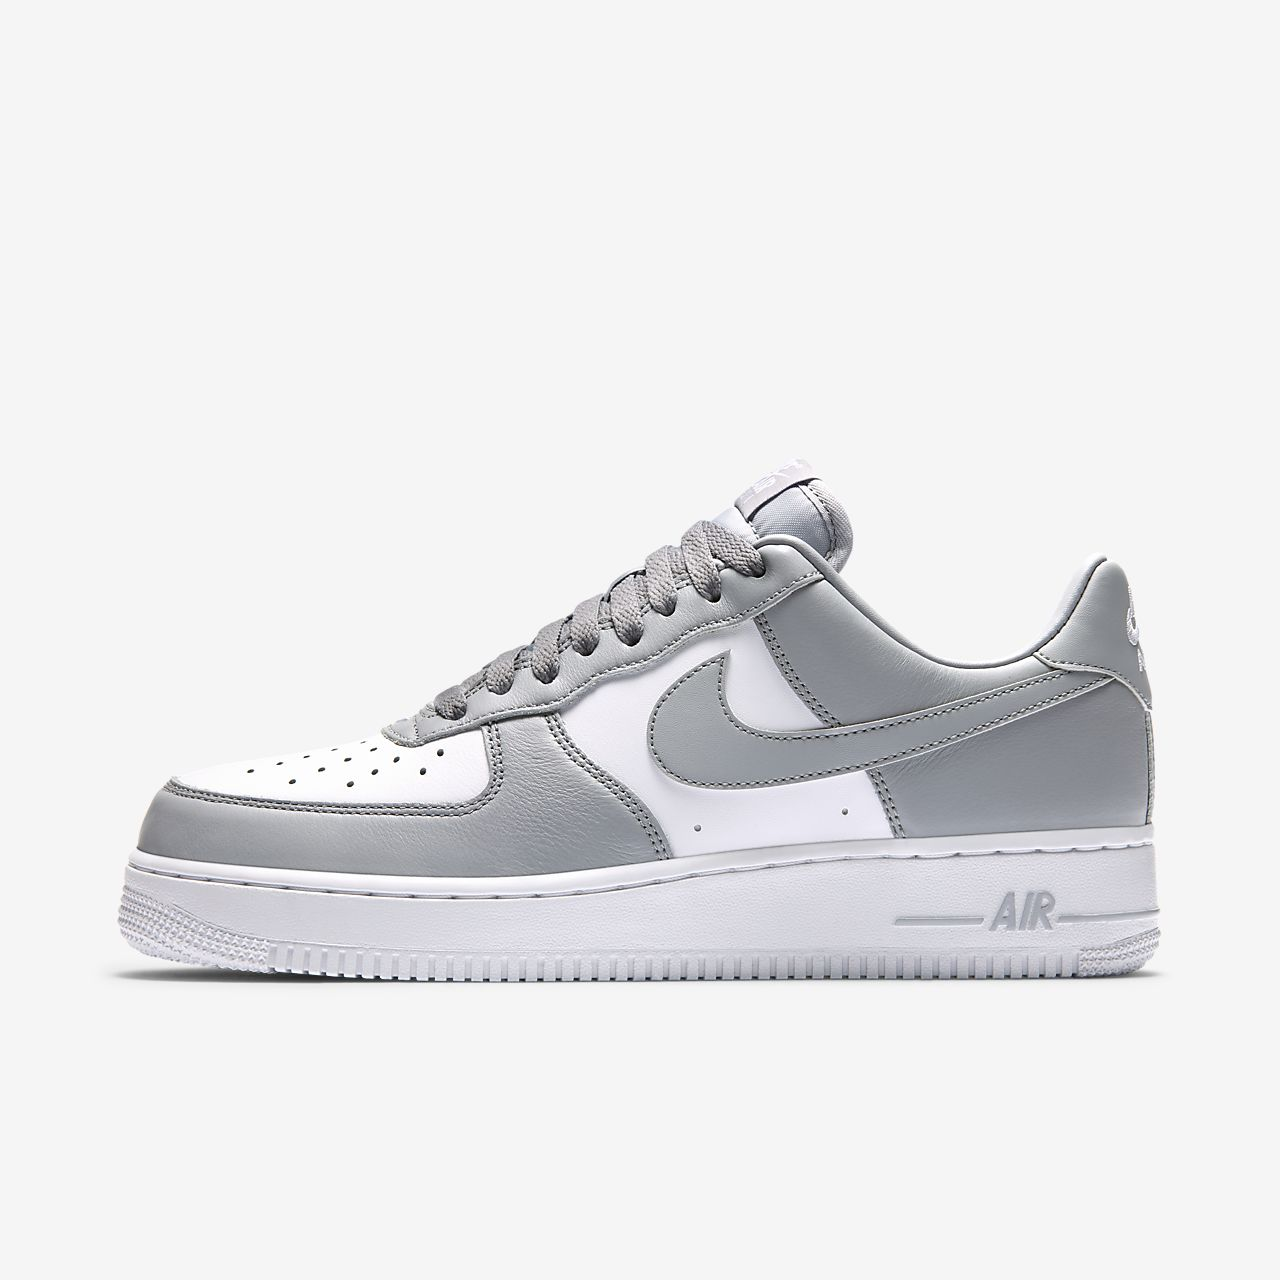 mens nike air force 1 low lv8 nz